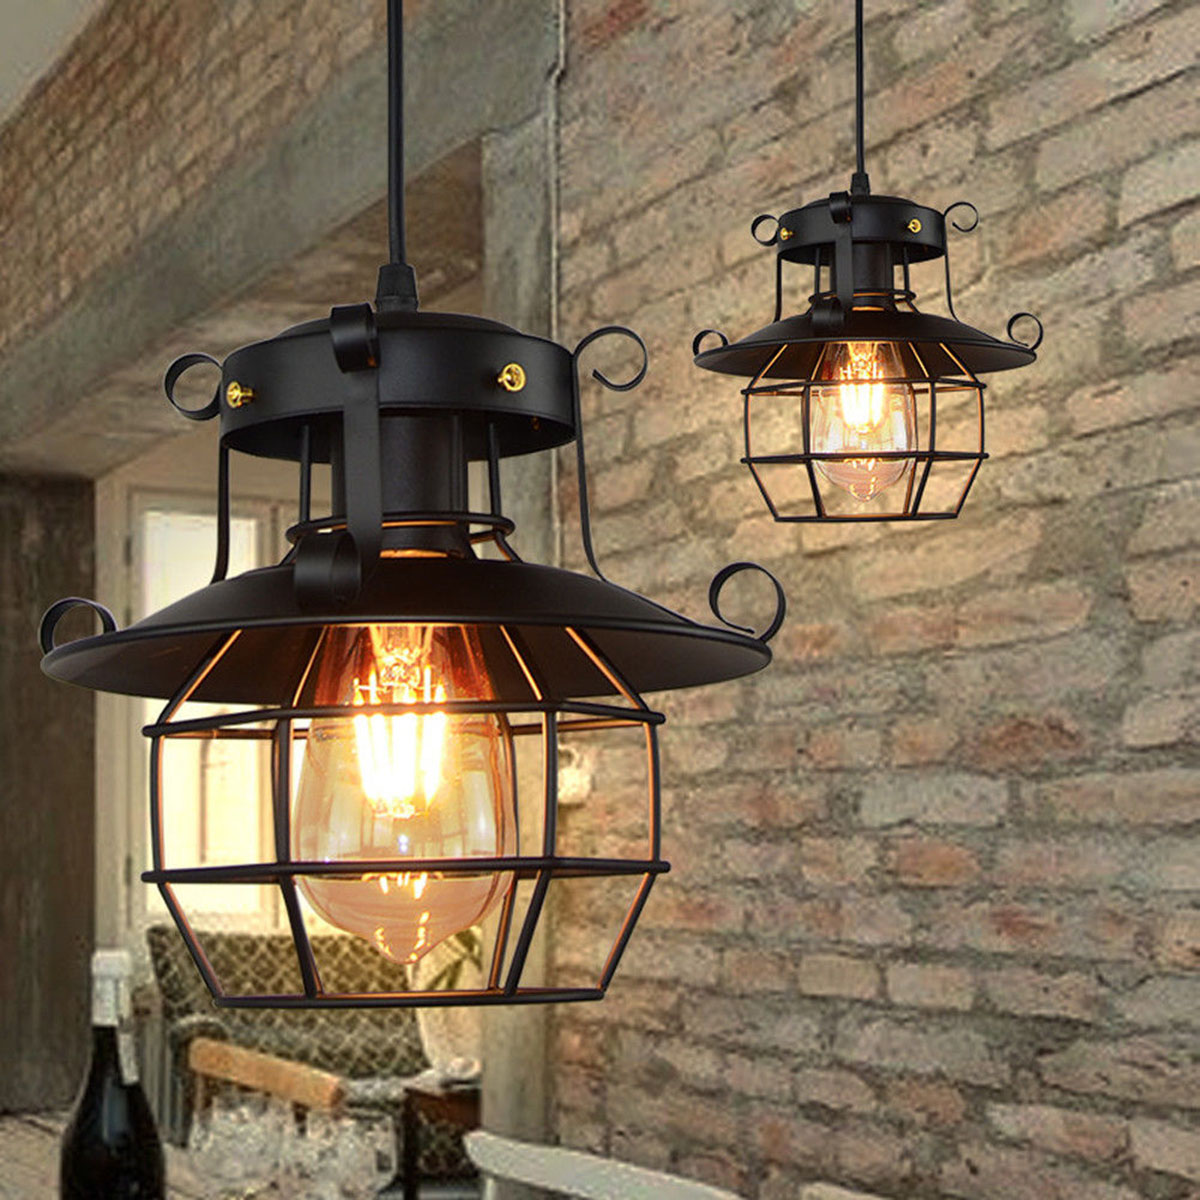 E27 Pendant Light Bar Kitchen Retro Industrial Hanging Lamp Ceiling Light Chandelier Fixtures Cage Edison Modern Loft Home Decor